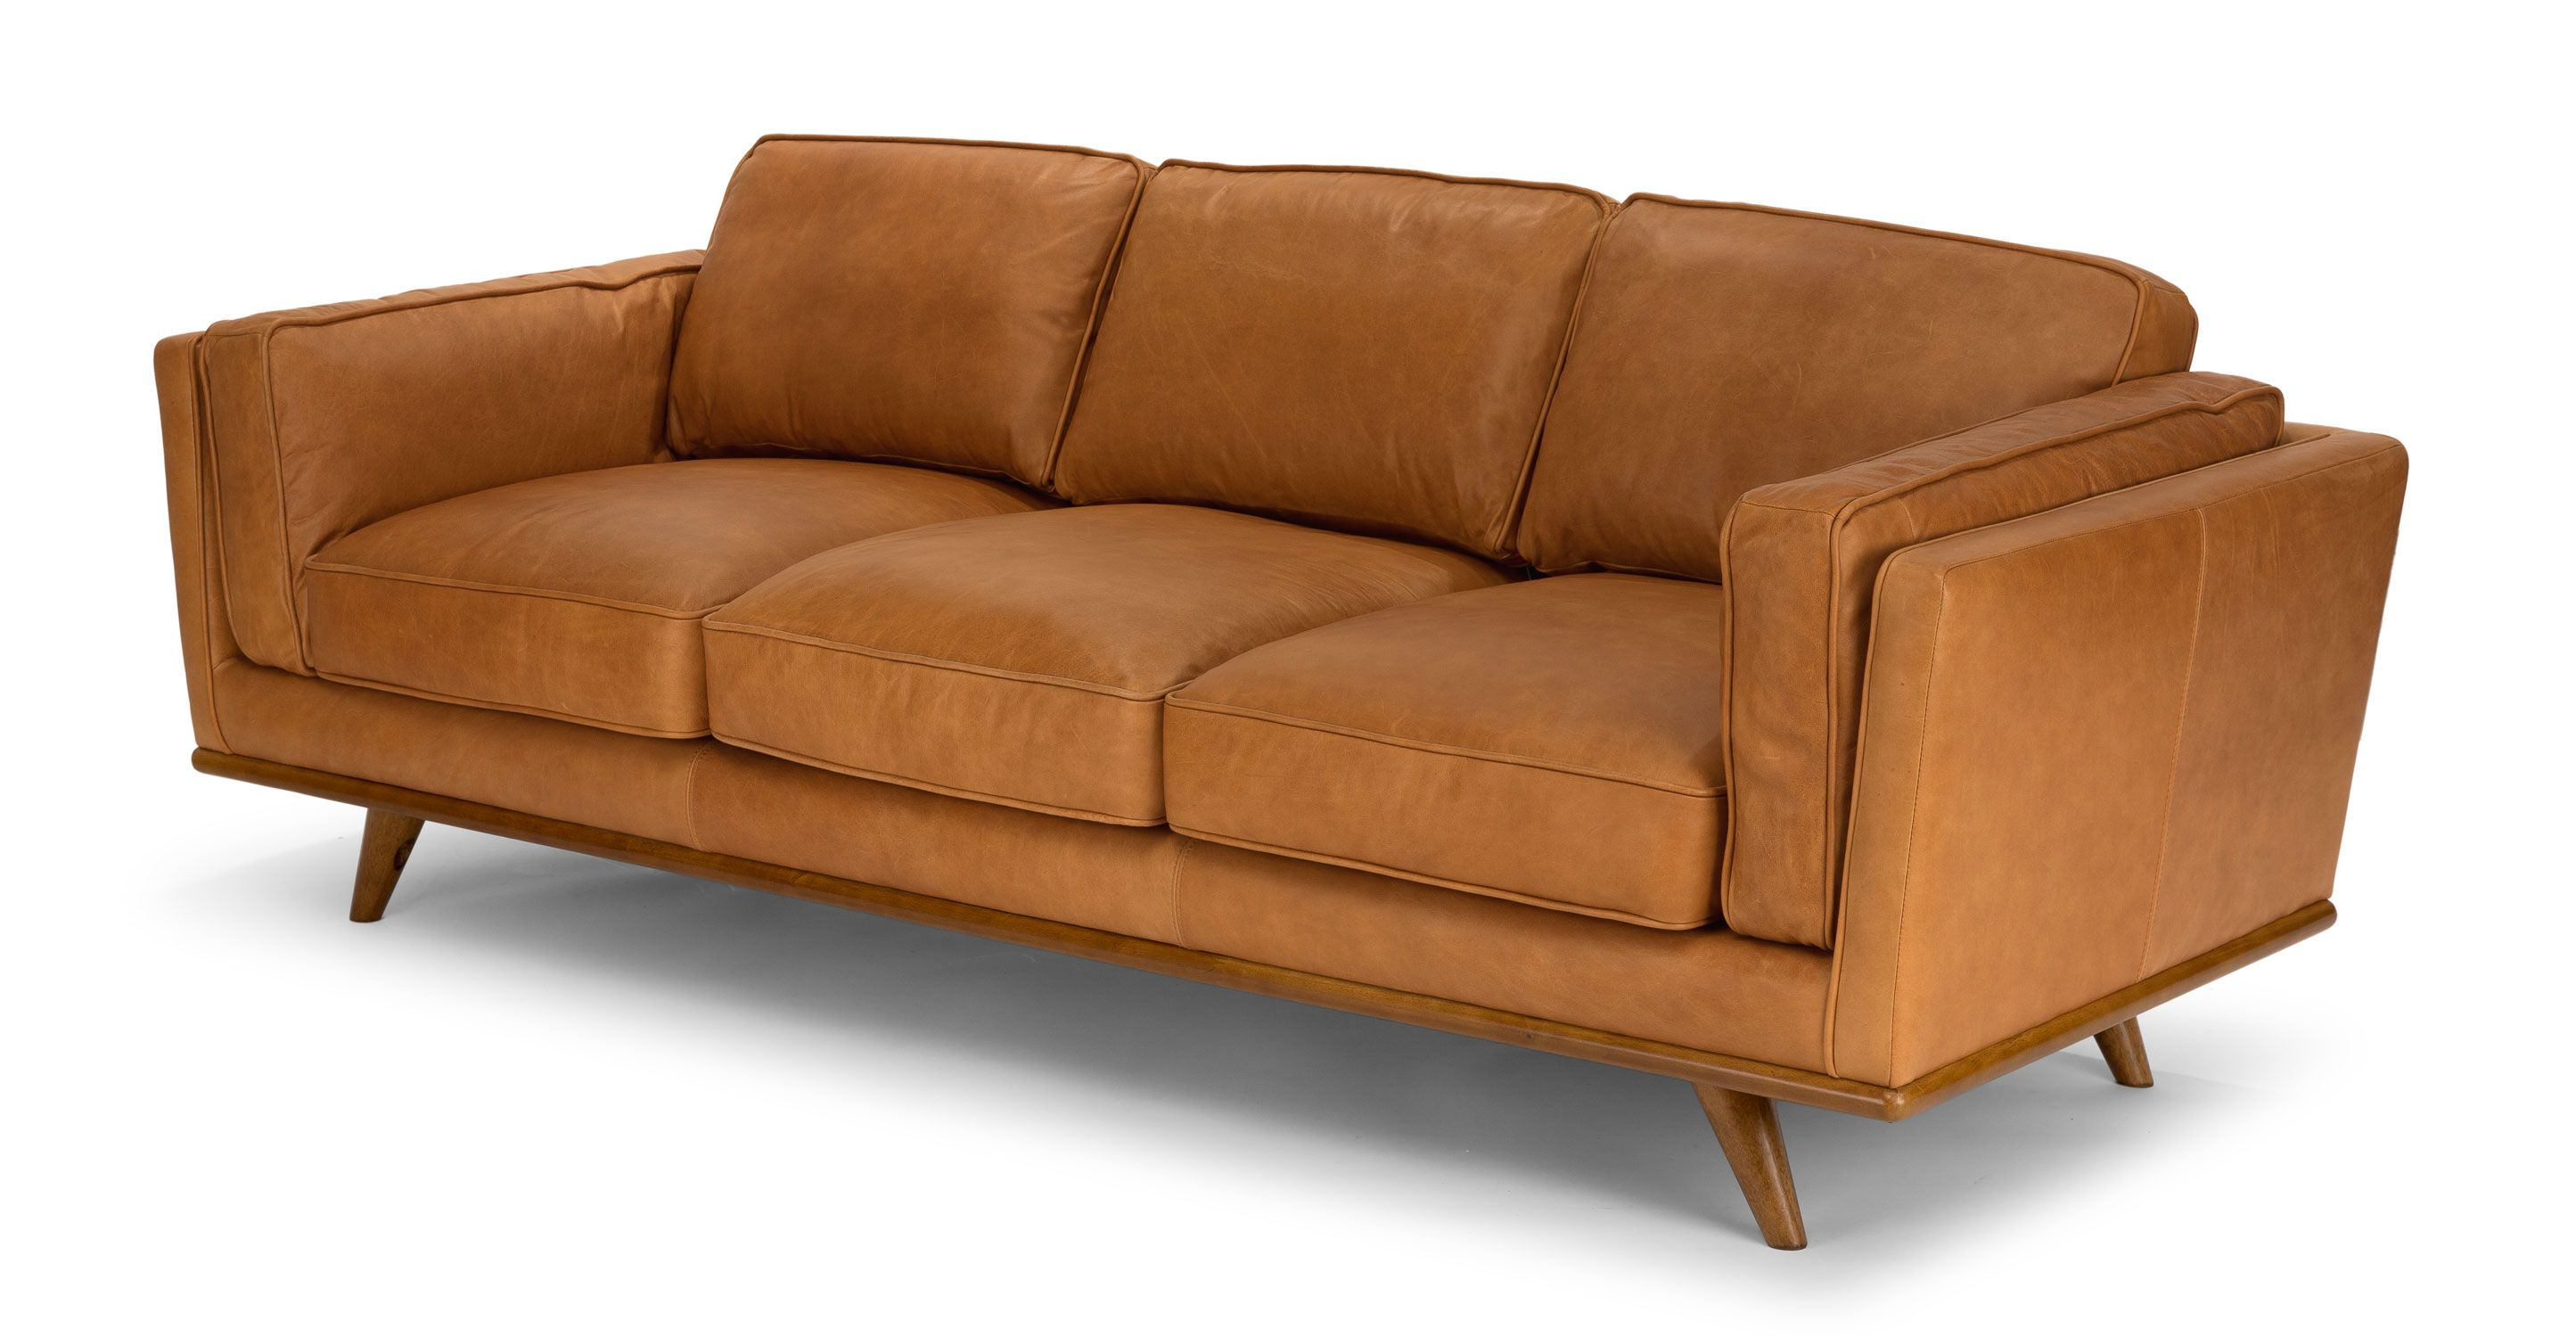 Natuzzi Couchtisch Tan Leather Sofa In Honey Oak Wood 3 Seat Article Timber Modern